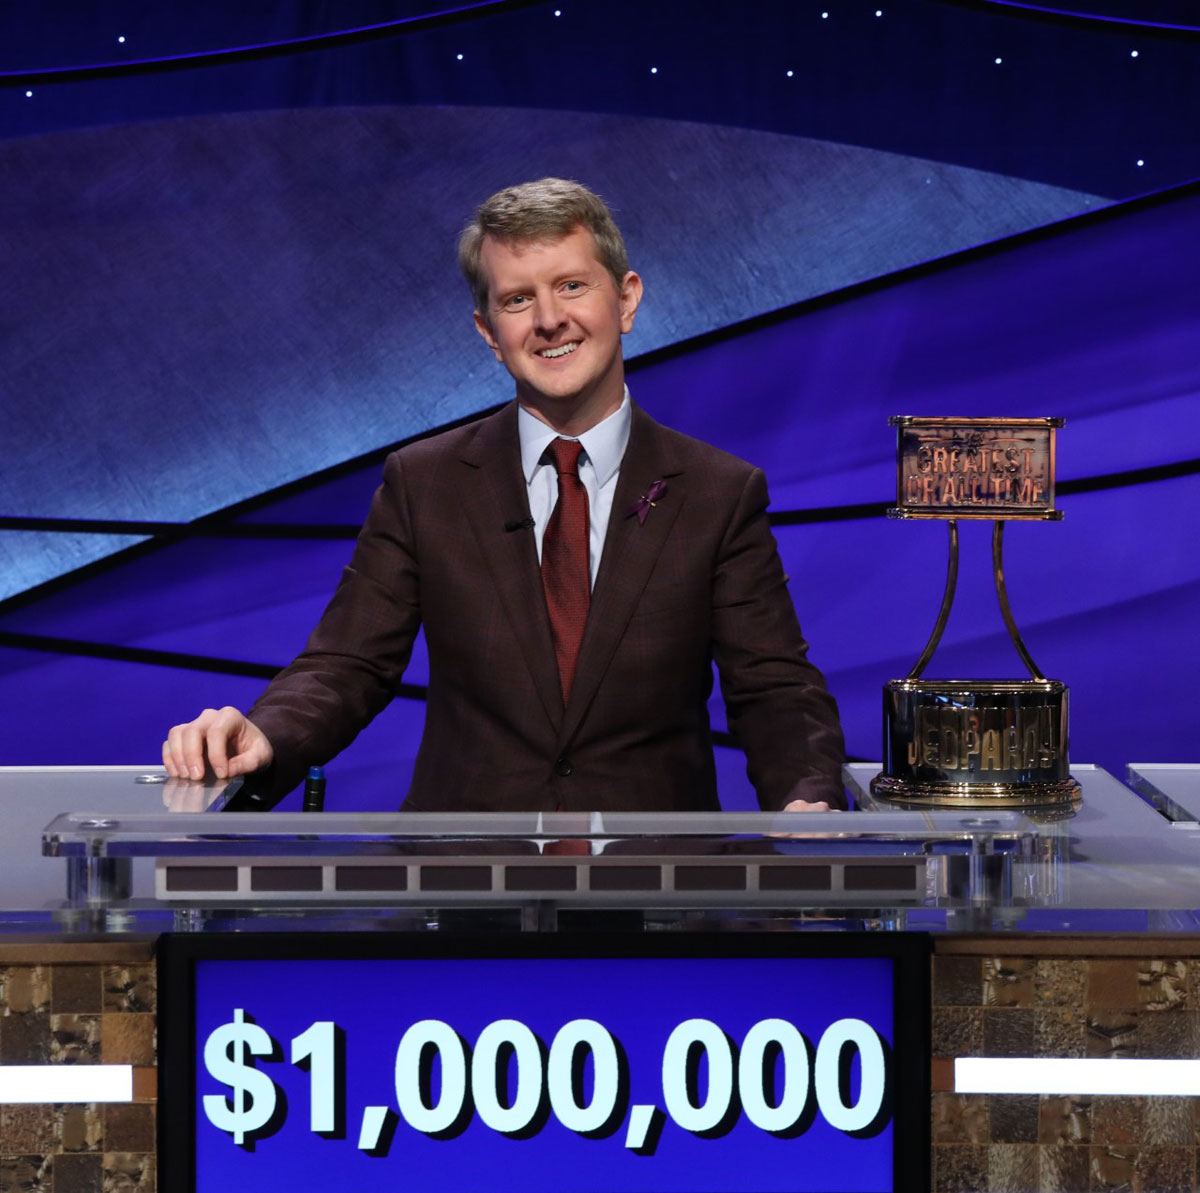 Ken Jennings, Jeopardy! champion